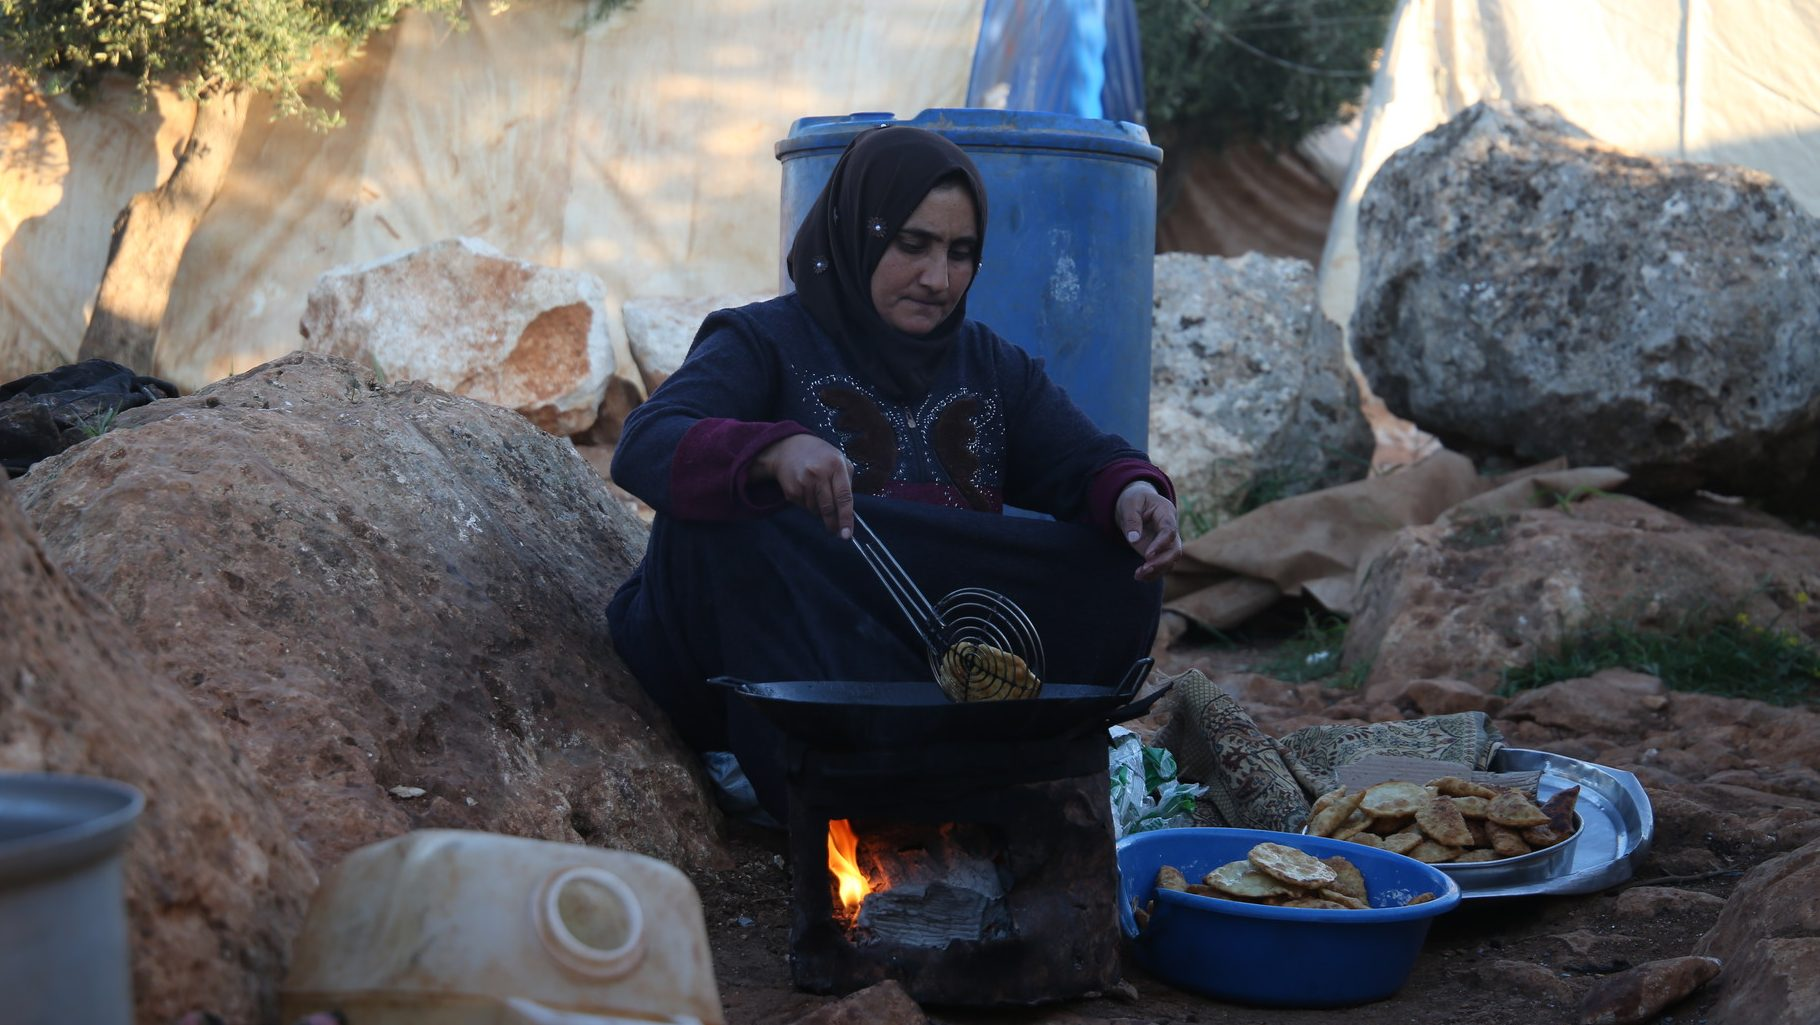 A Syrian woman in dark clothing cooks over an open fire in a displacement camp